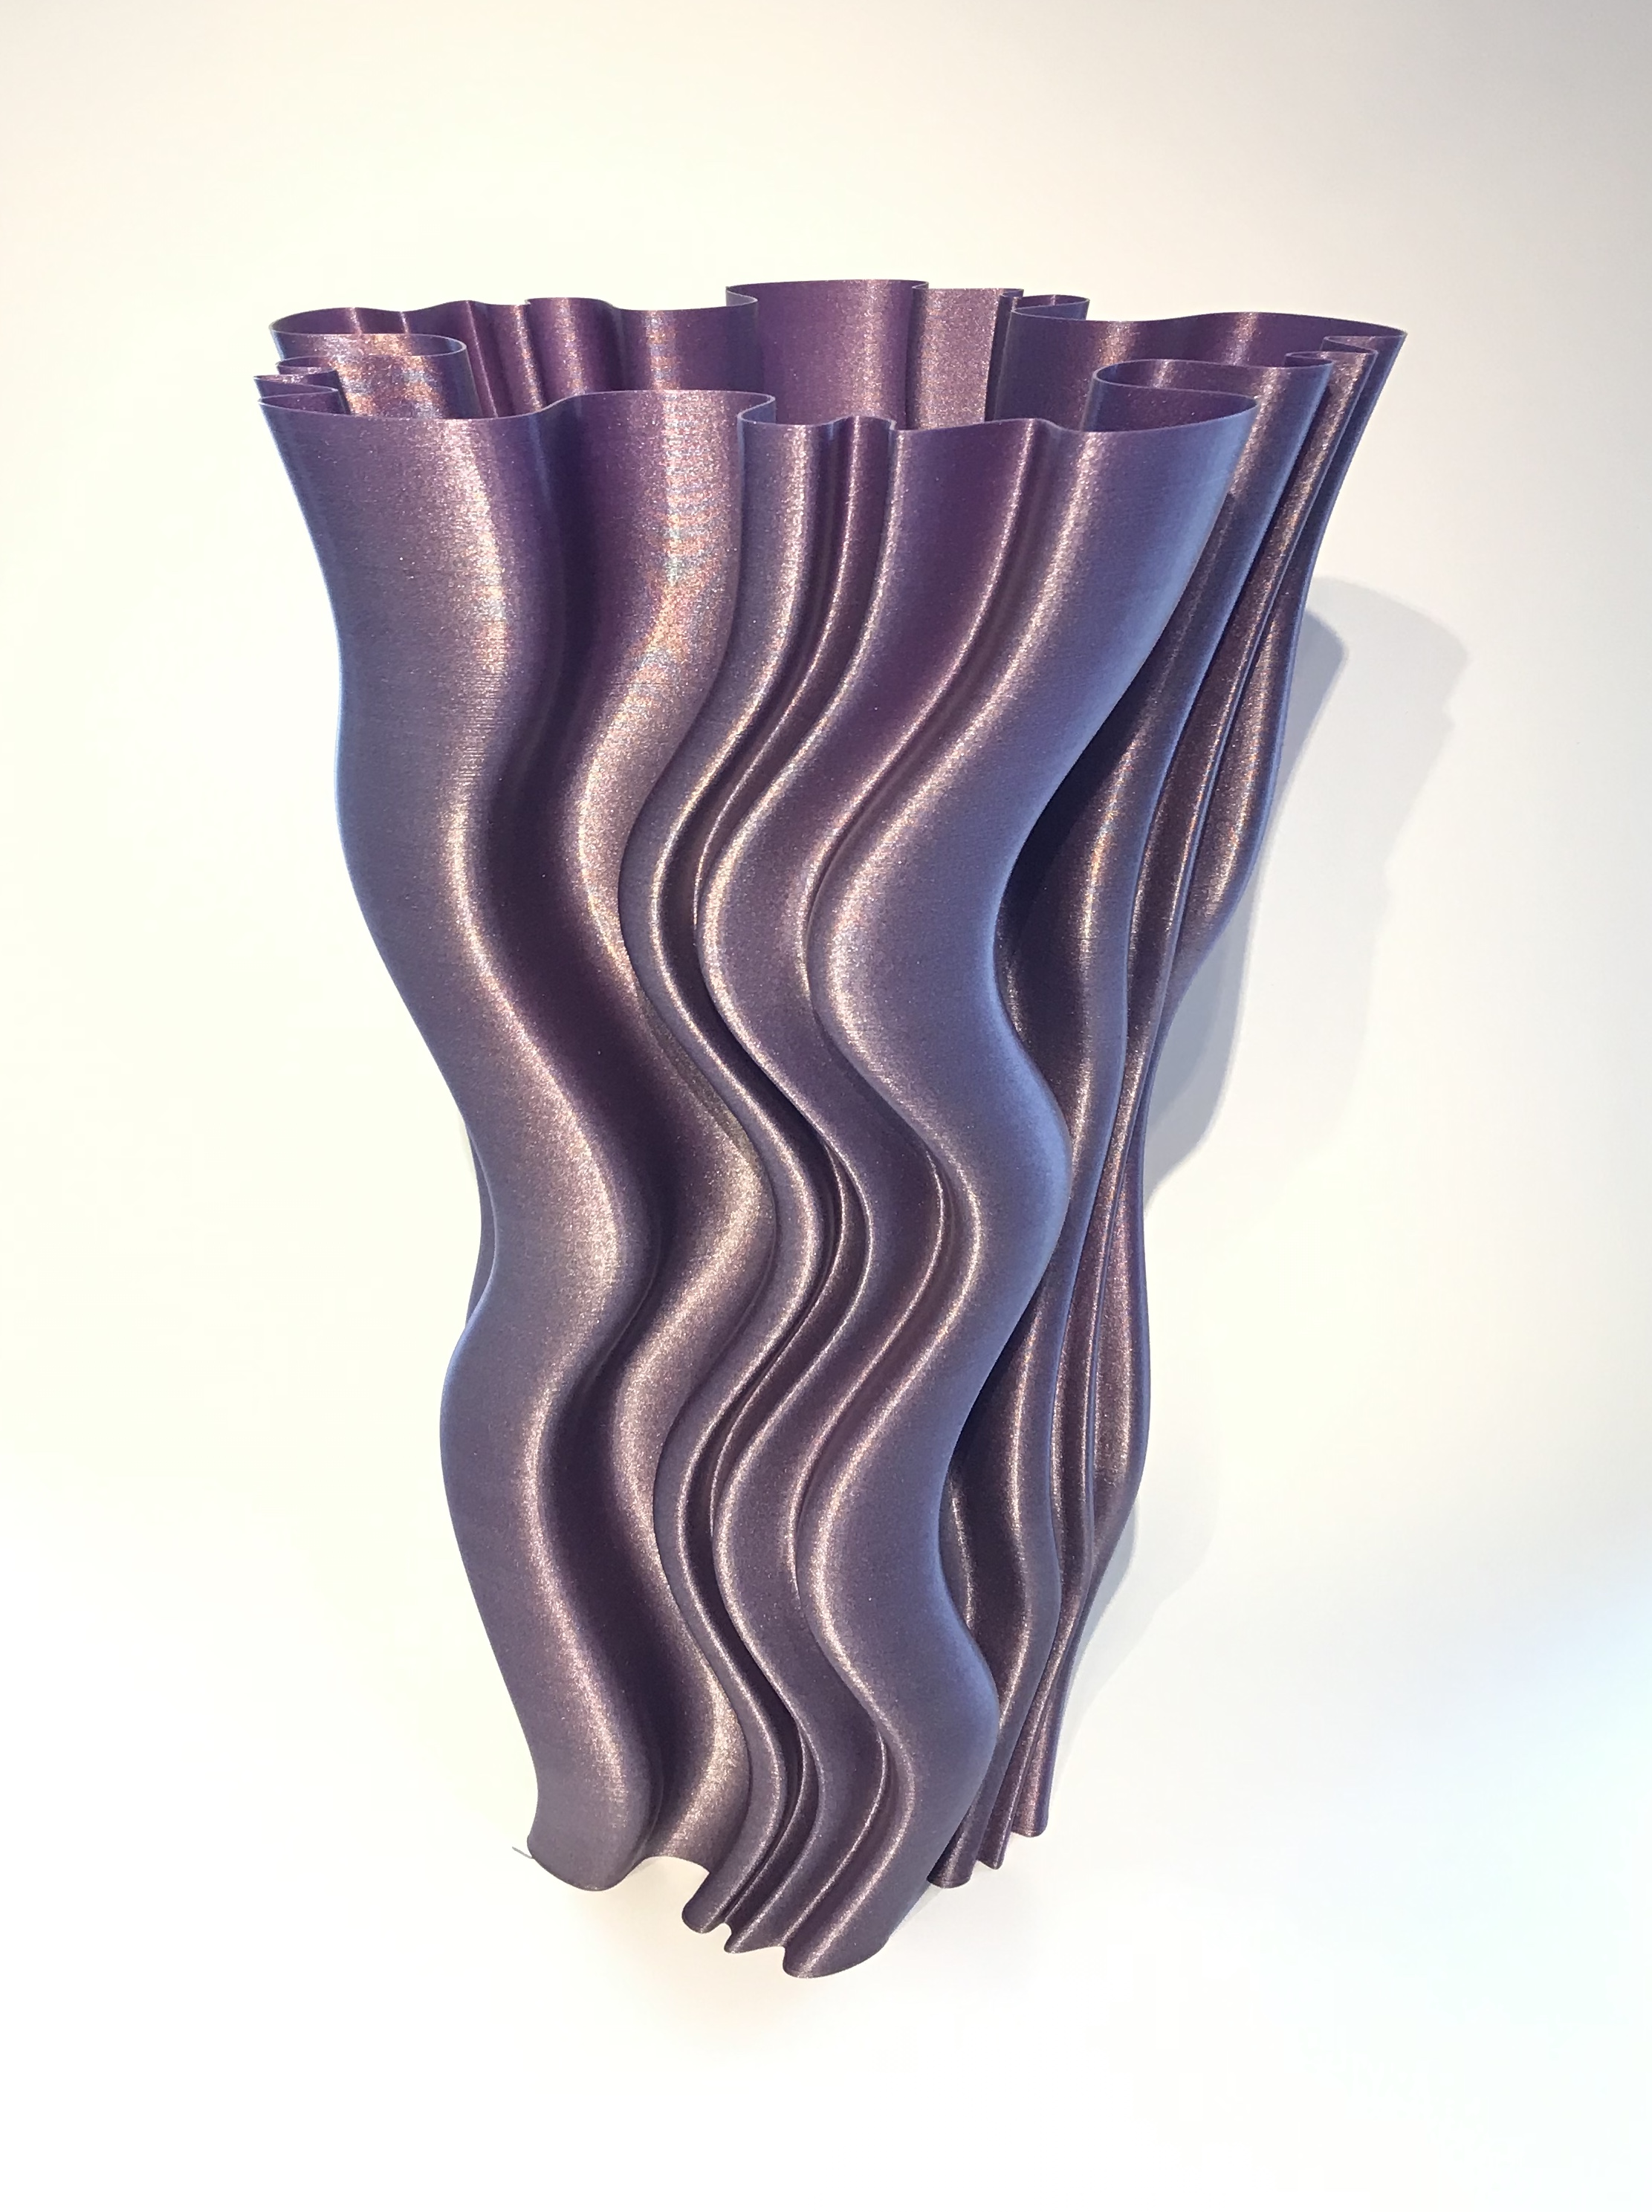 IMG_6194.jpg Download free STL file Super wavy vase • 3D printing object, Brithawkes